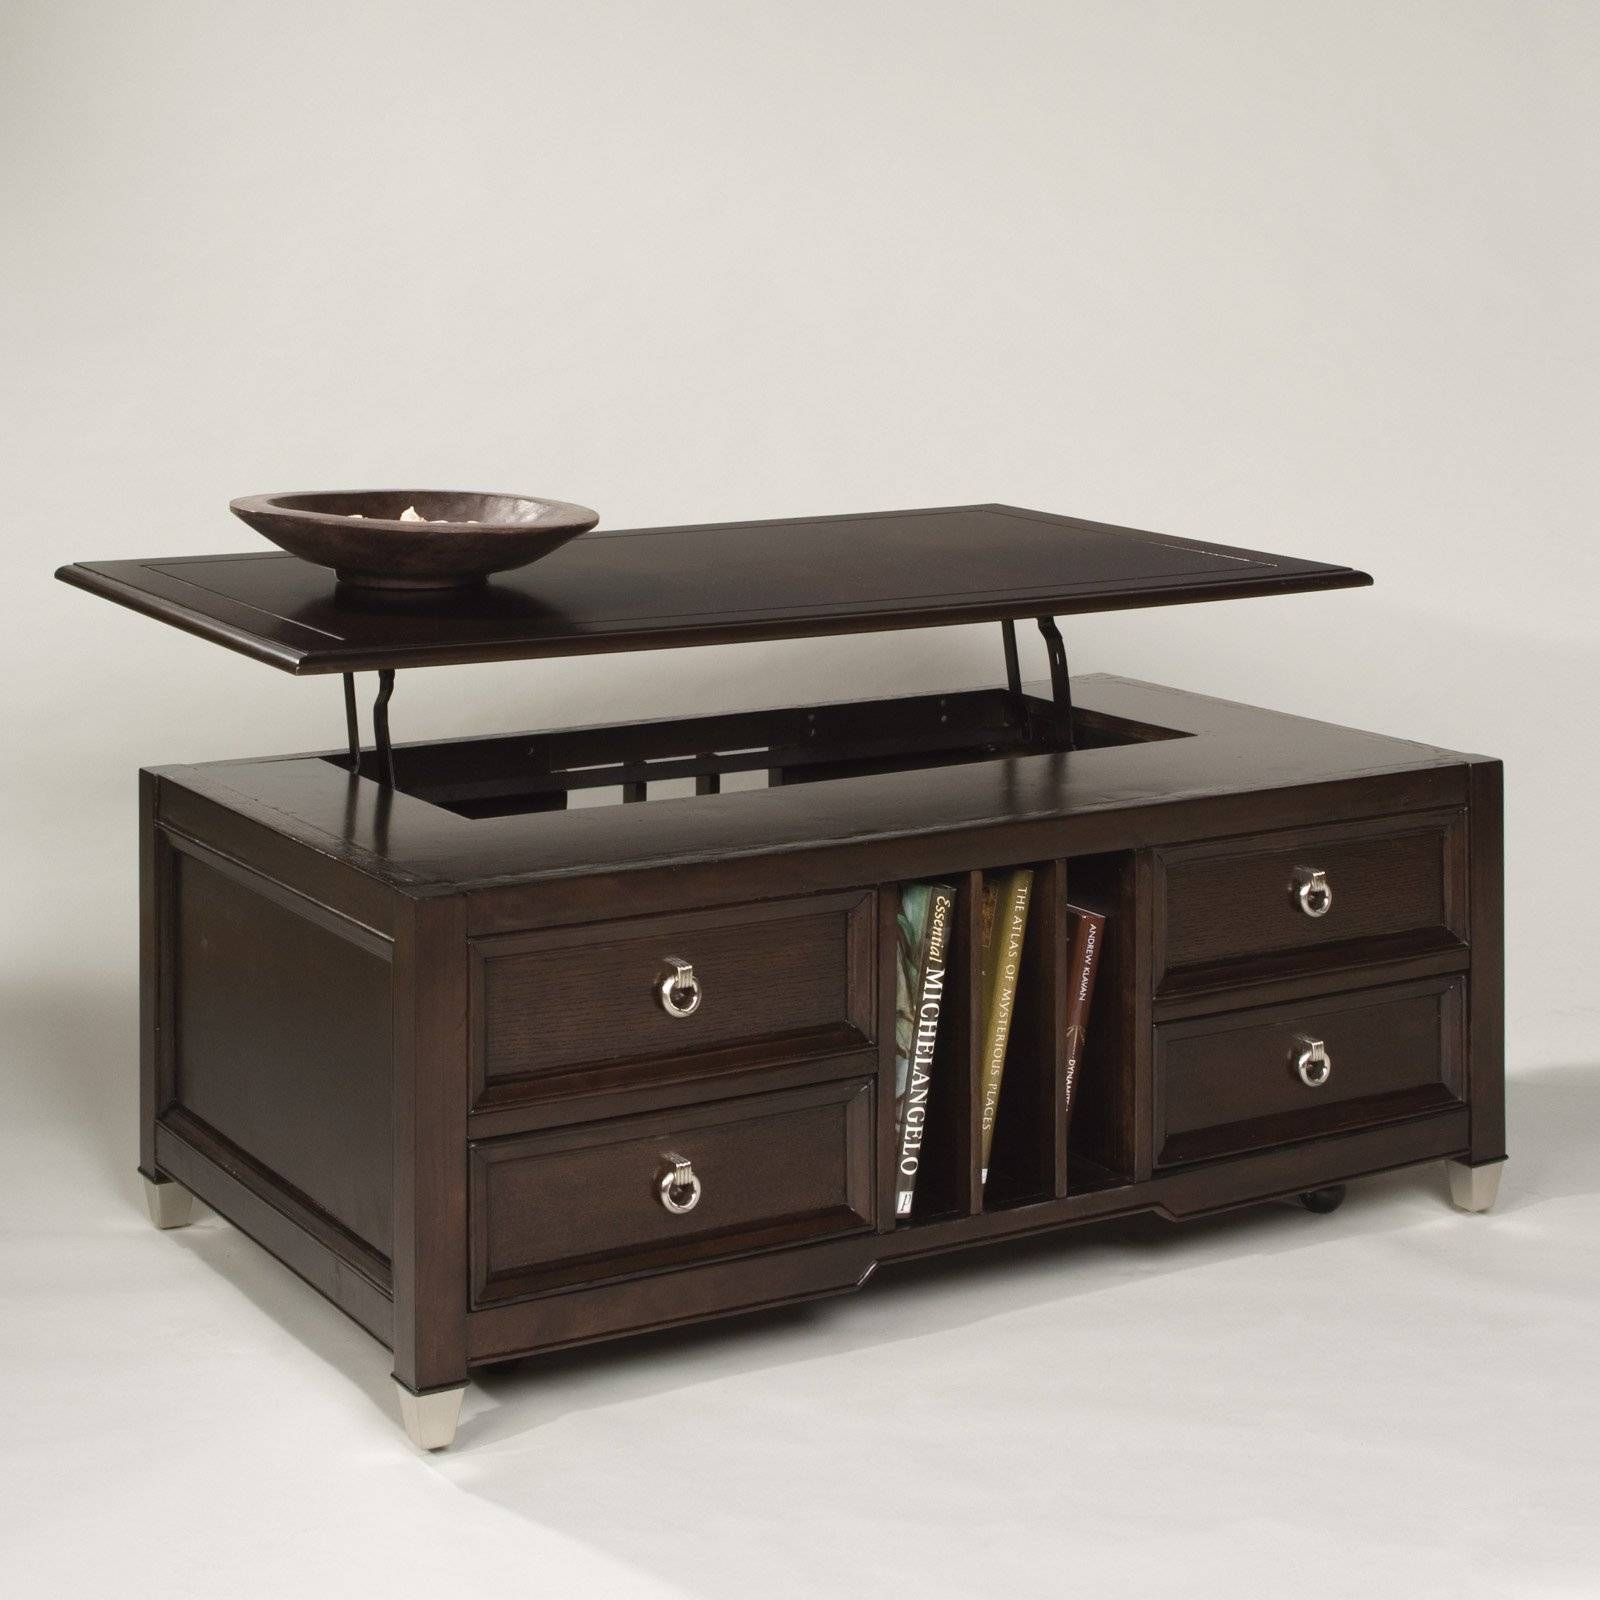 Coffee Tables: Cool Square Coffee Tables With Storage Design Ideas intended for Large Coffee Tables With Storage (Image 14 of 30)